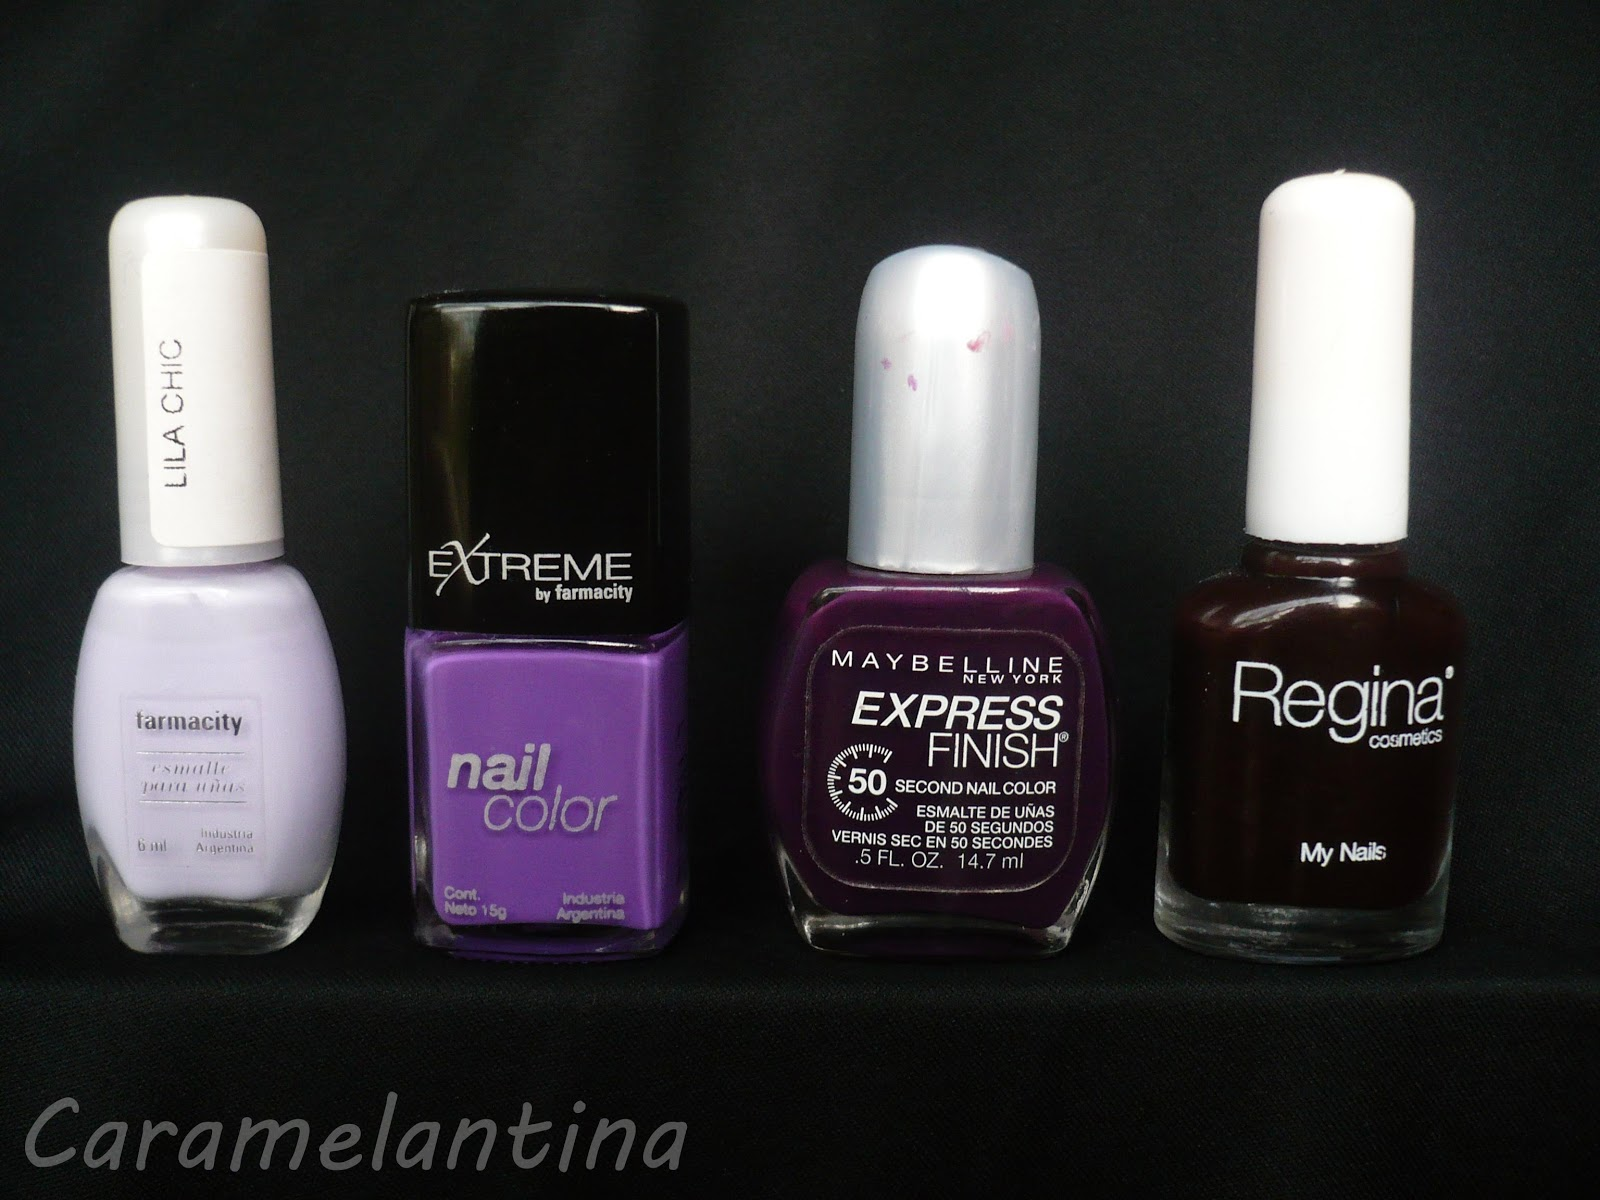 Farmacity Lila Chic, Extreme by Farmacity Giovanna, Maybelline Express Finish Grape Times 608, Regina Queen Elizabeth